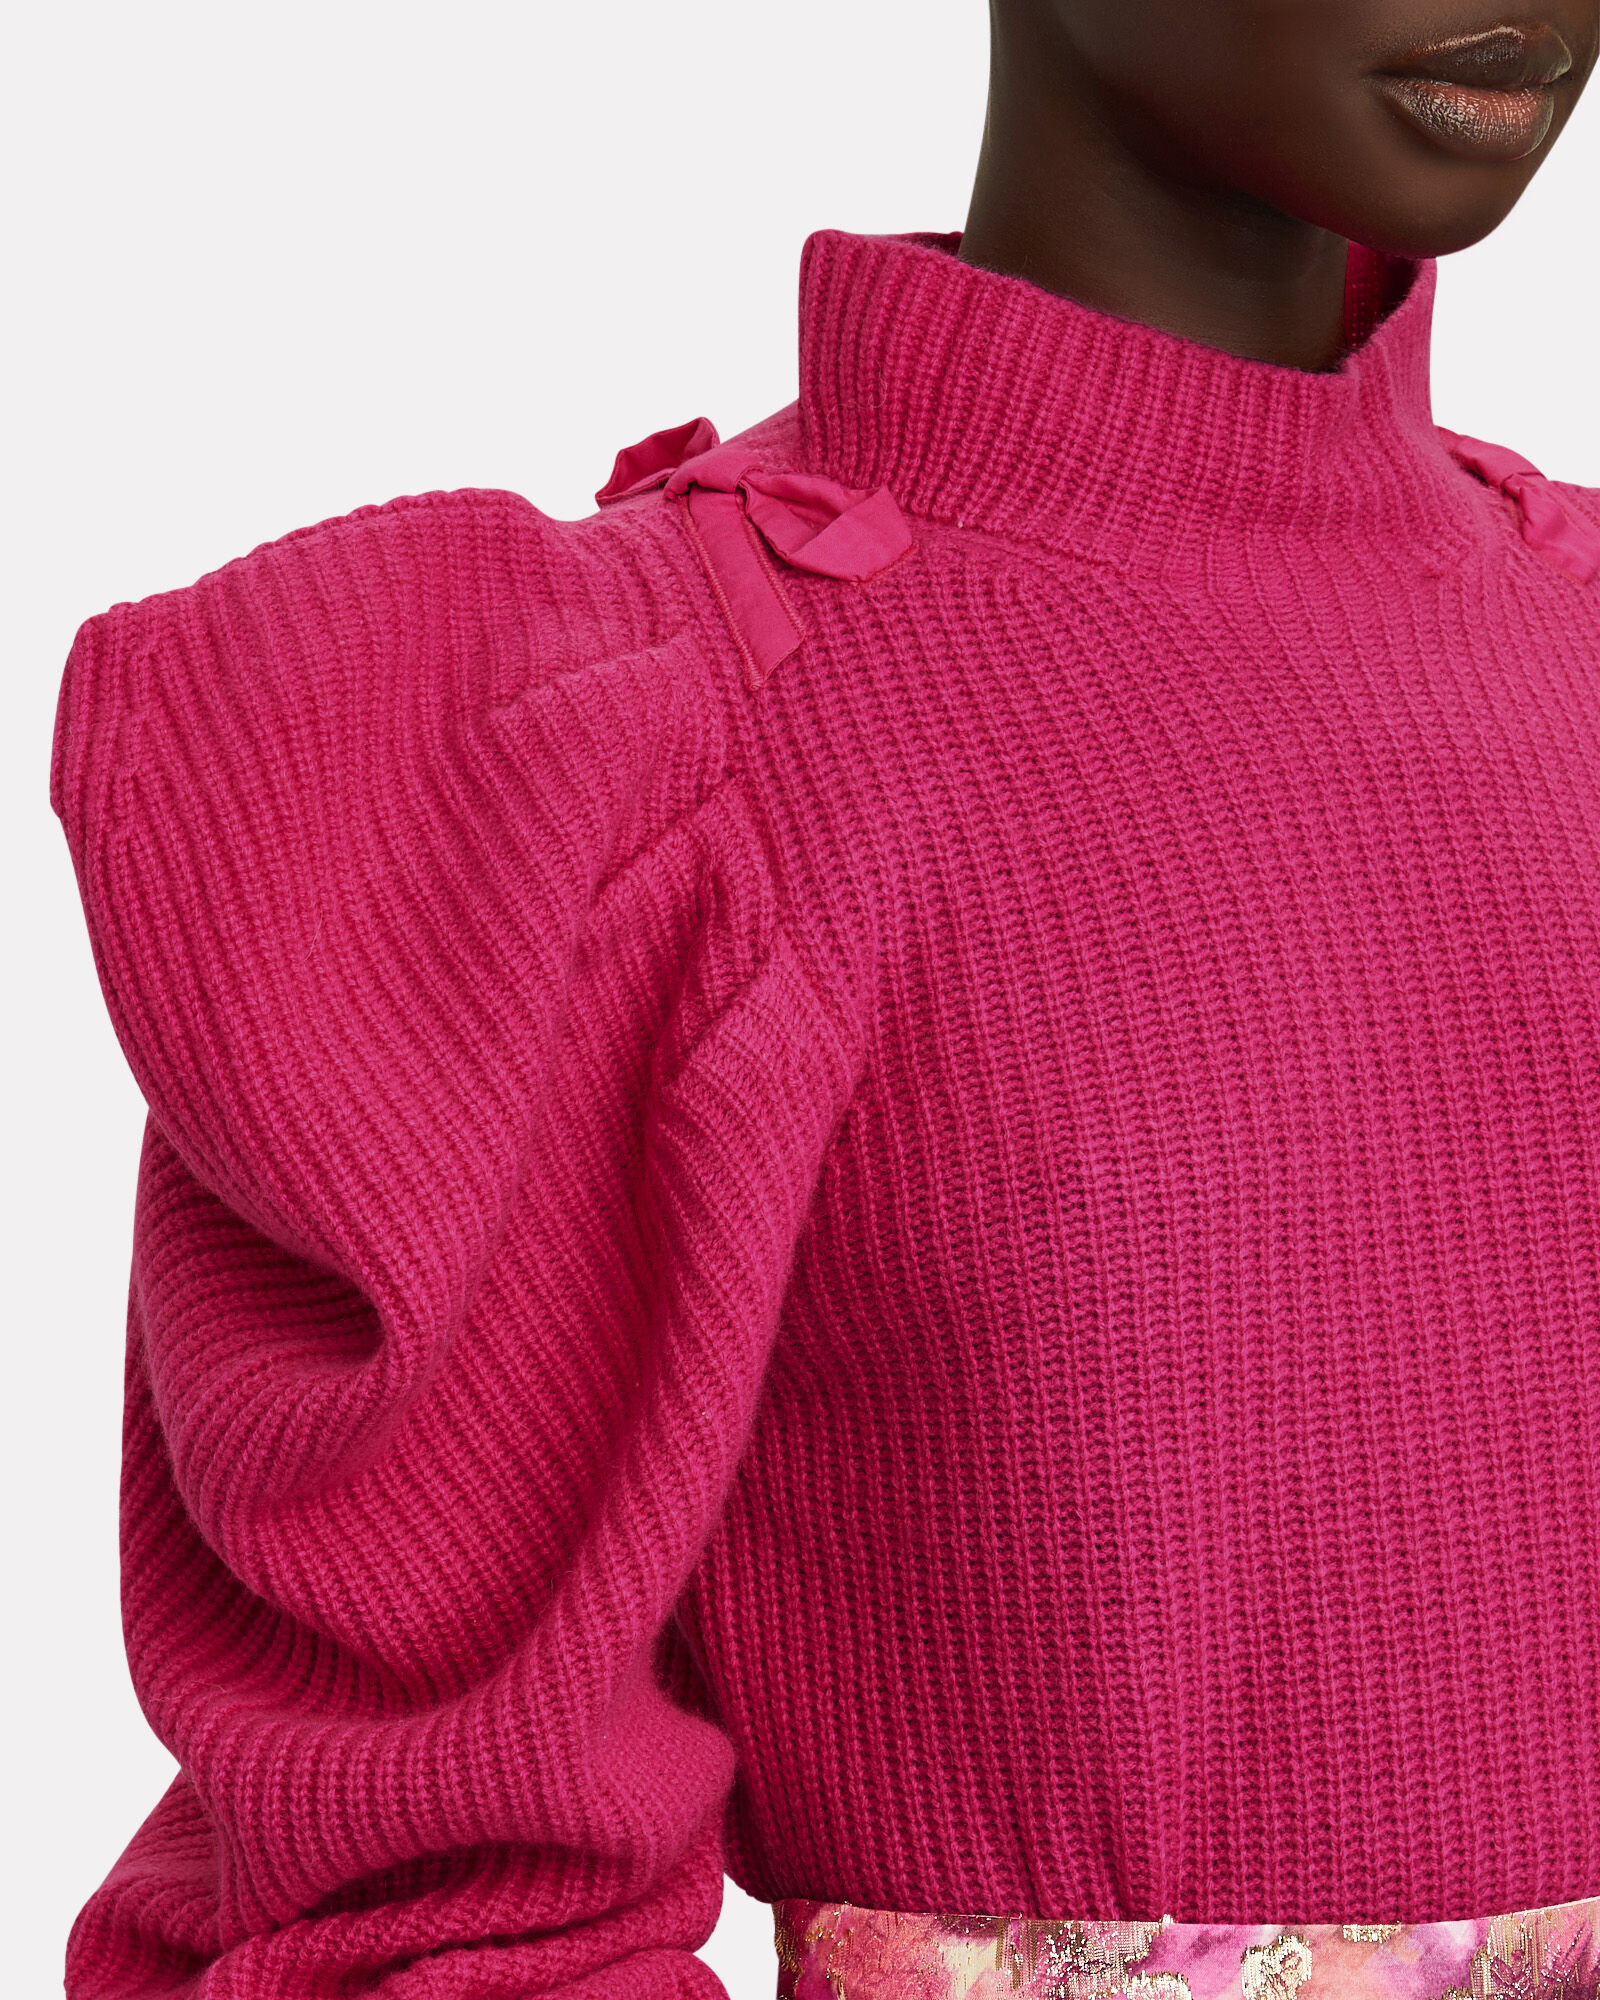 Potter Puff Sleeve Cashmere Sweater, PINK, hi-res